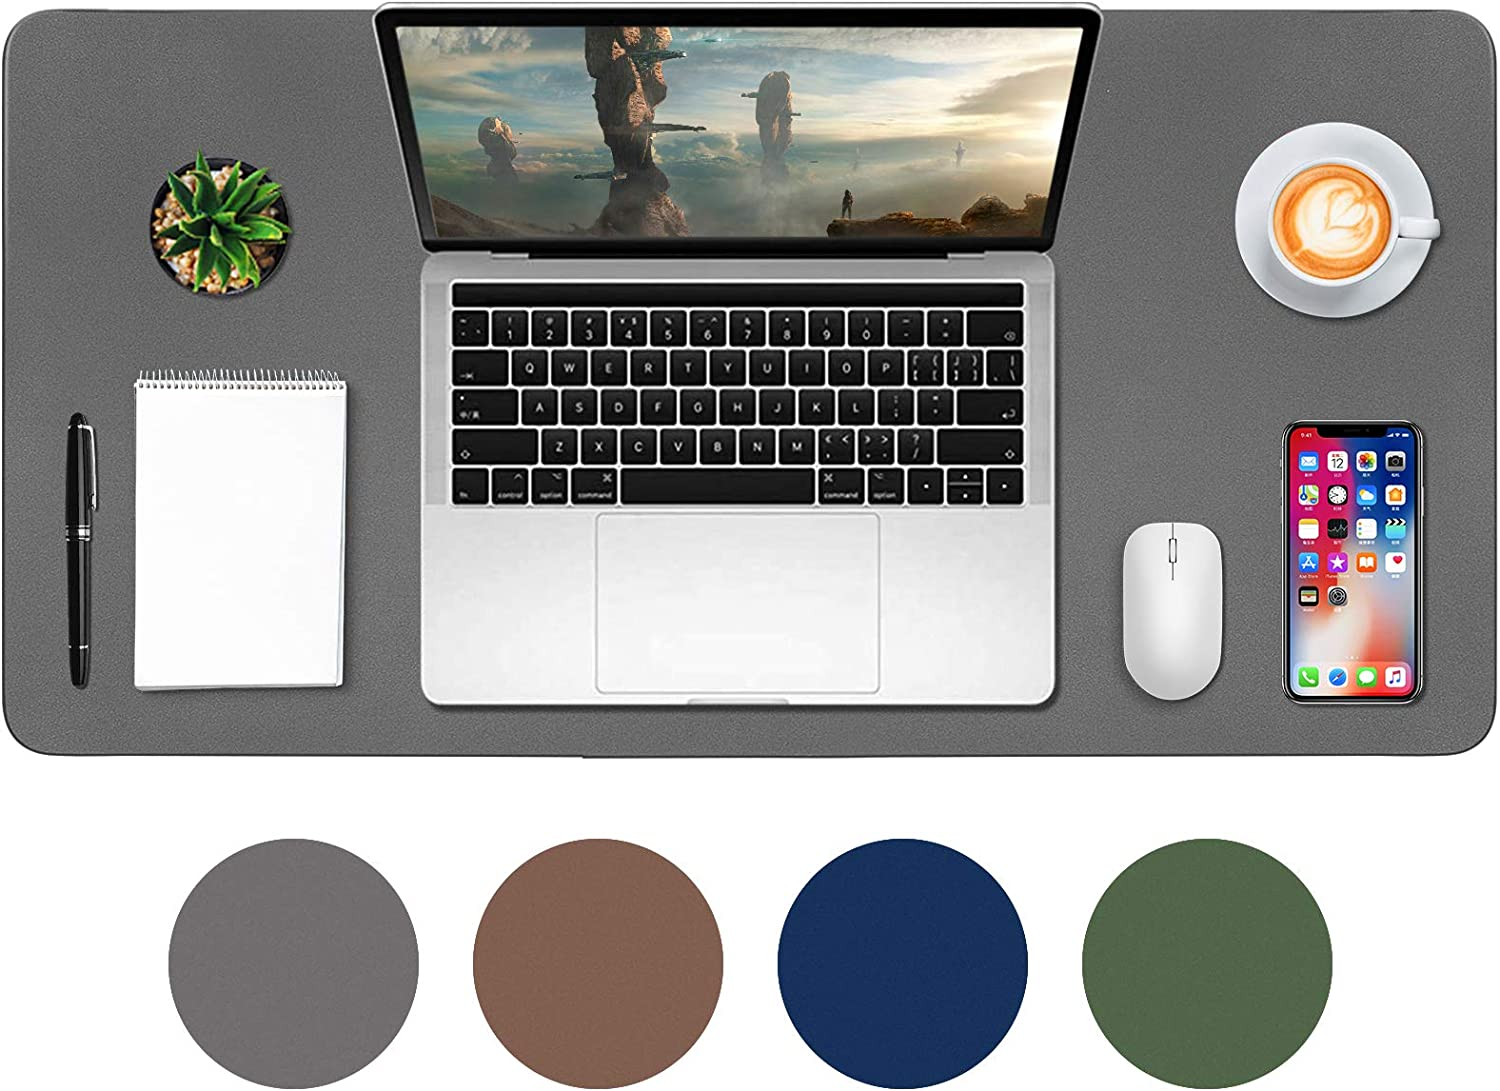 "Desk Mat,Leather Desk Pad Protector,Mouse Pad,Office Desk Mat, Non-Slip PU Leather Desk Blotter,Laptop Desk Pad,Waterproof Desk Writing Pad for Office and Home-Gray(35"" x 18"")"